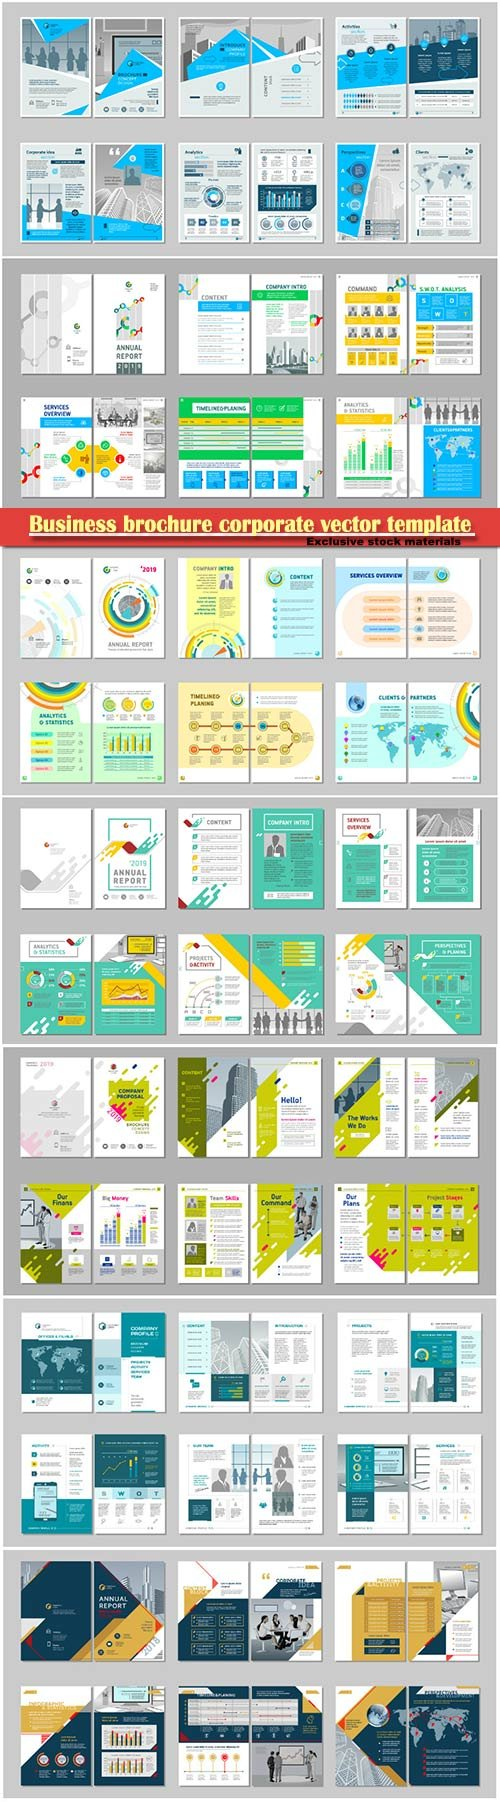 Business brochure corporate vector template, magazine flyer mockup # 34